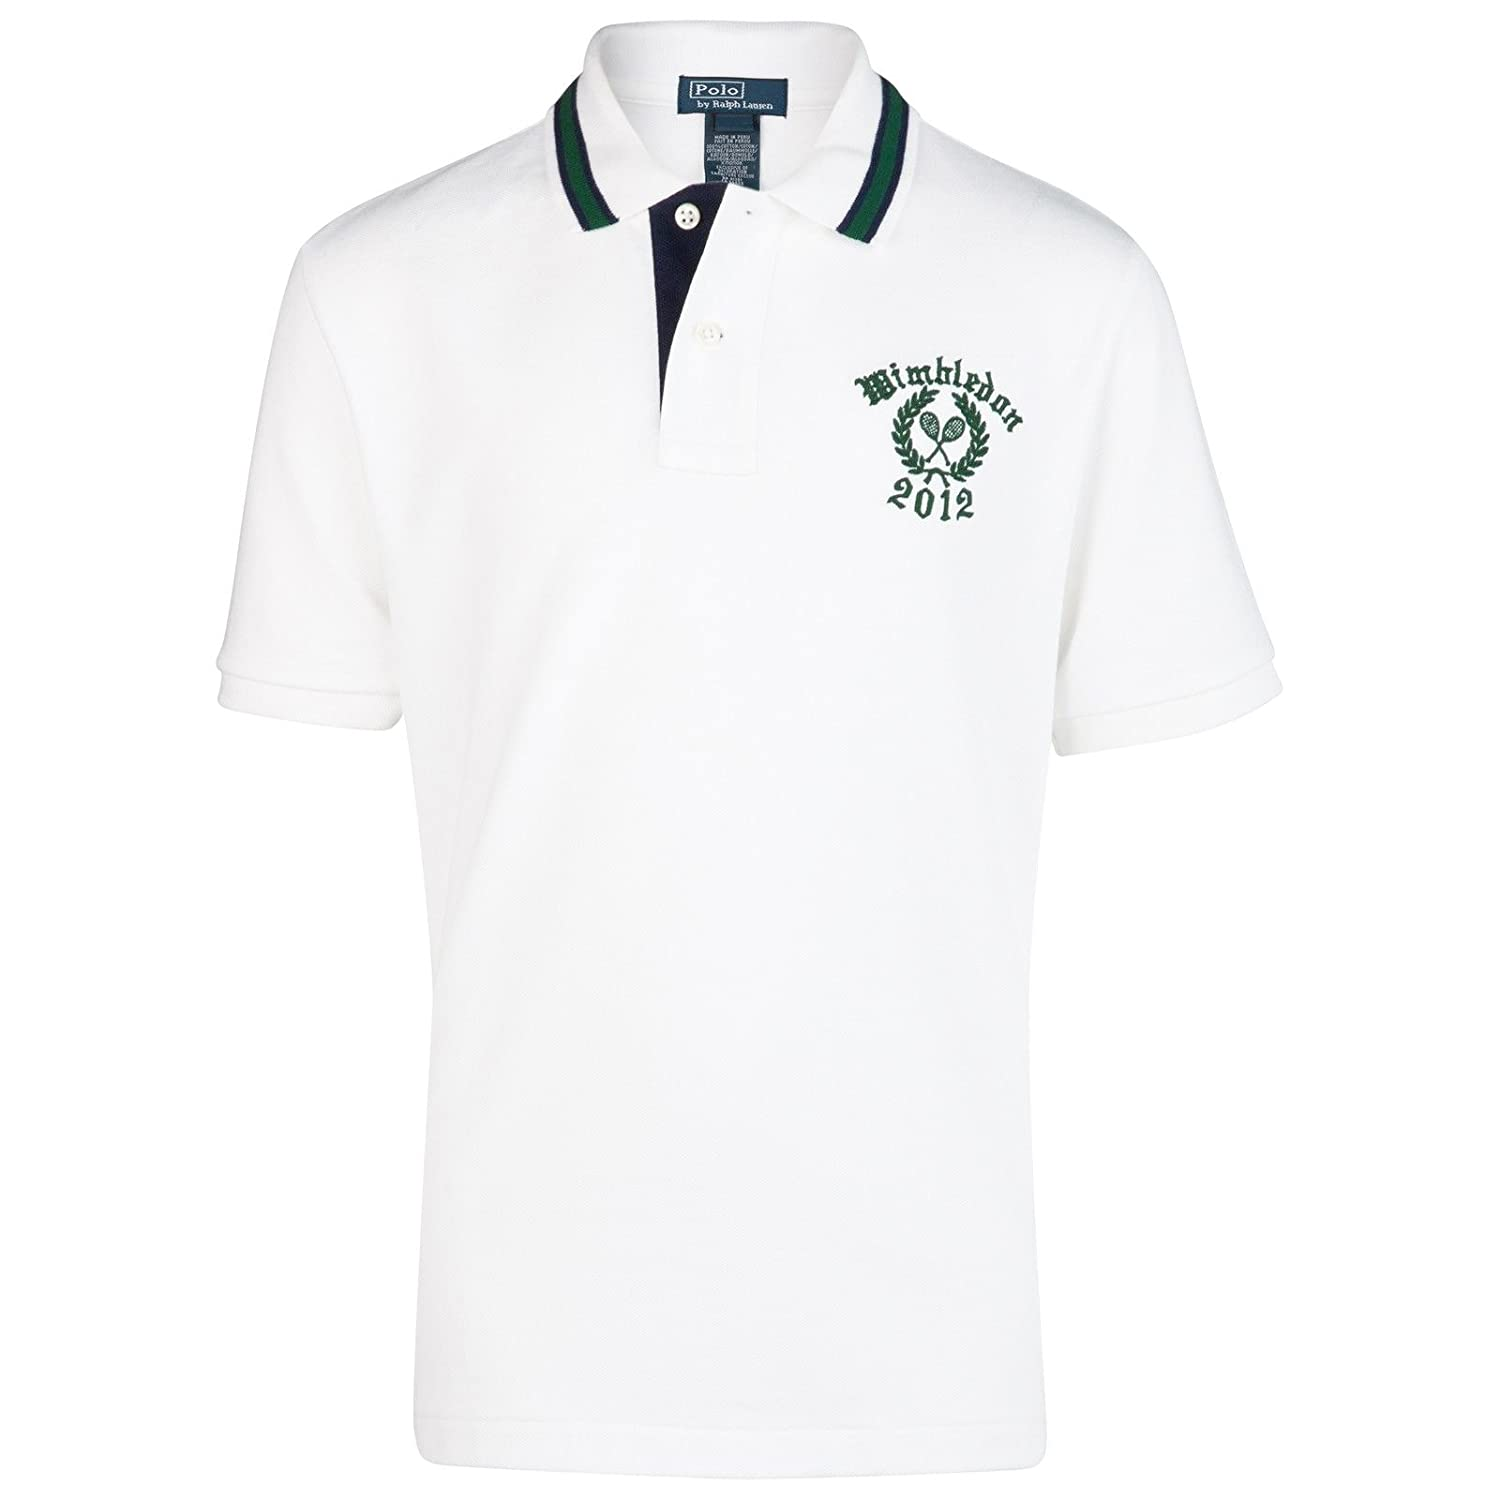 Ralph Lauren Wimbledon 2012 Polo Shirt 5 Years Old Amazon